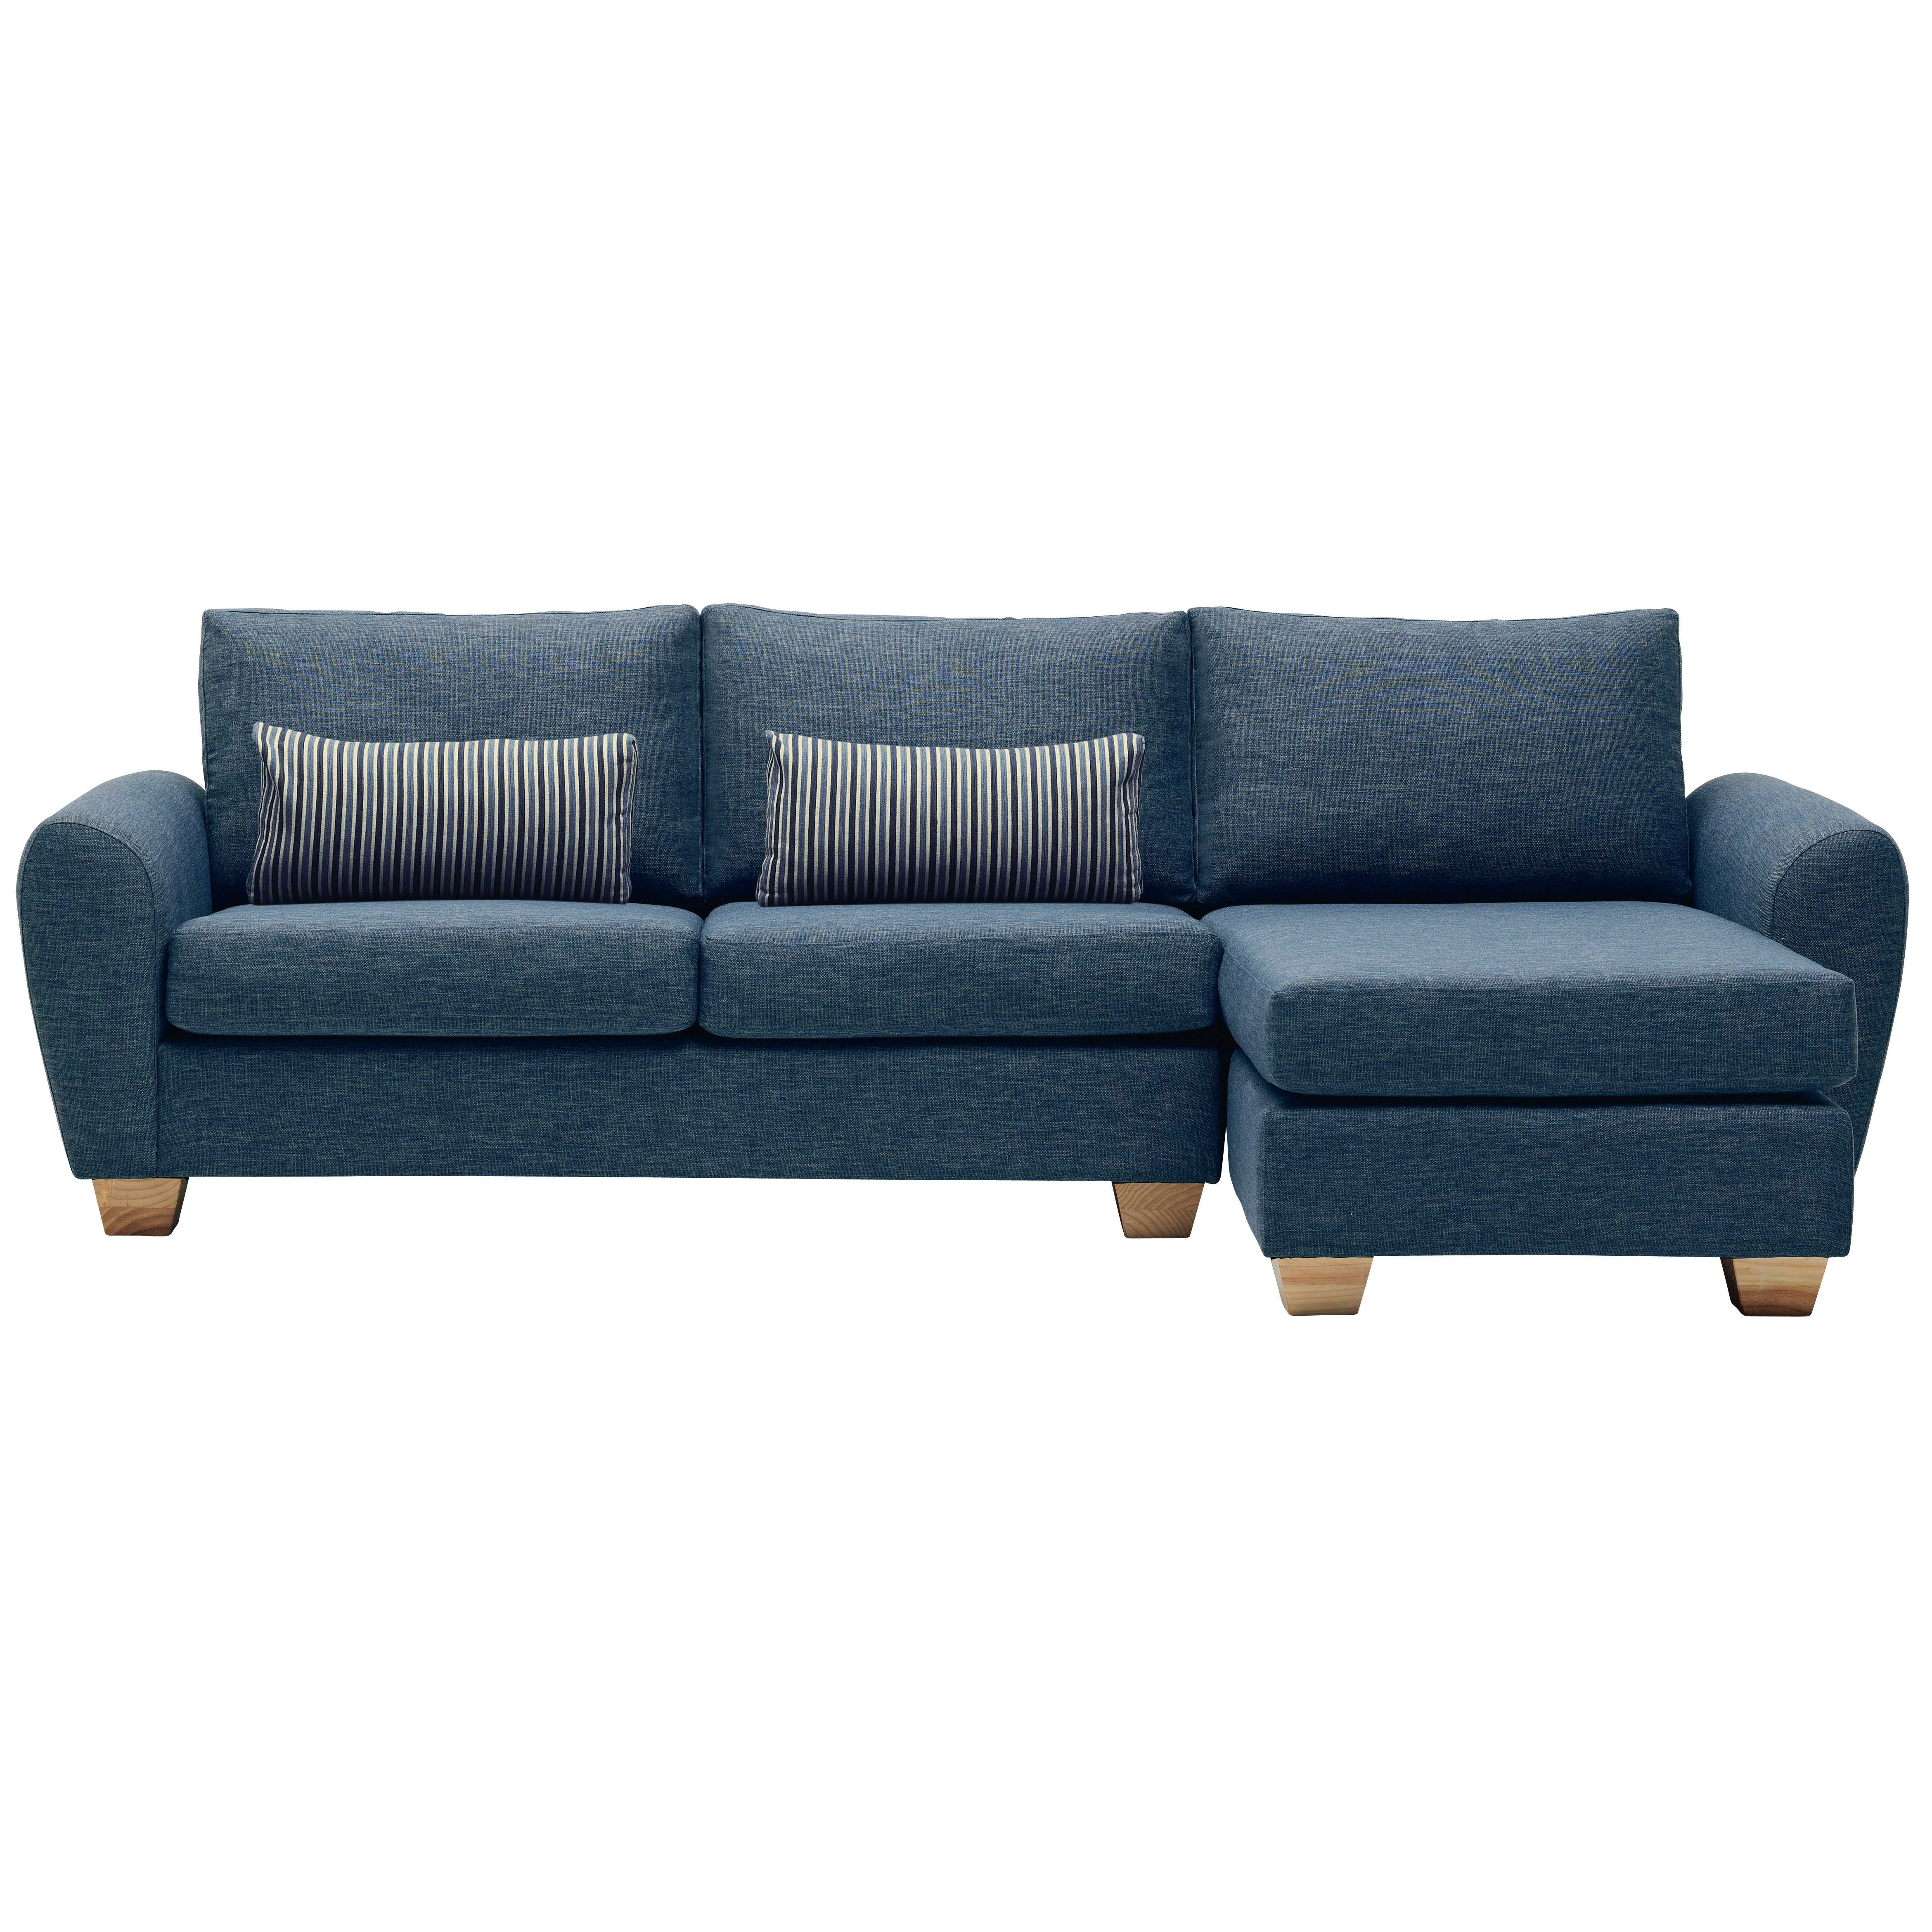 Options 2 5 Seater Fabric Sofa With Chaise Domayne Online Store